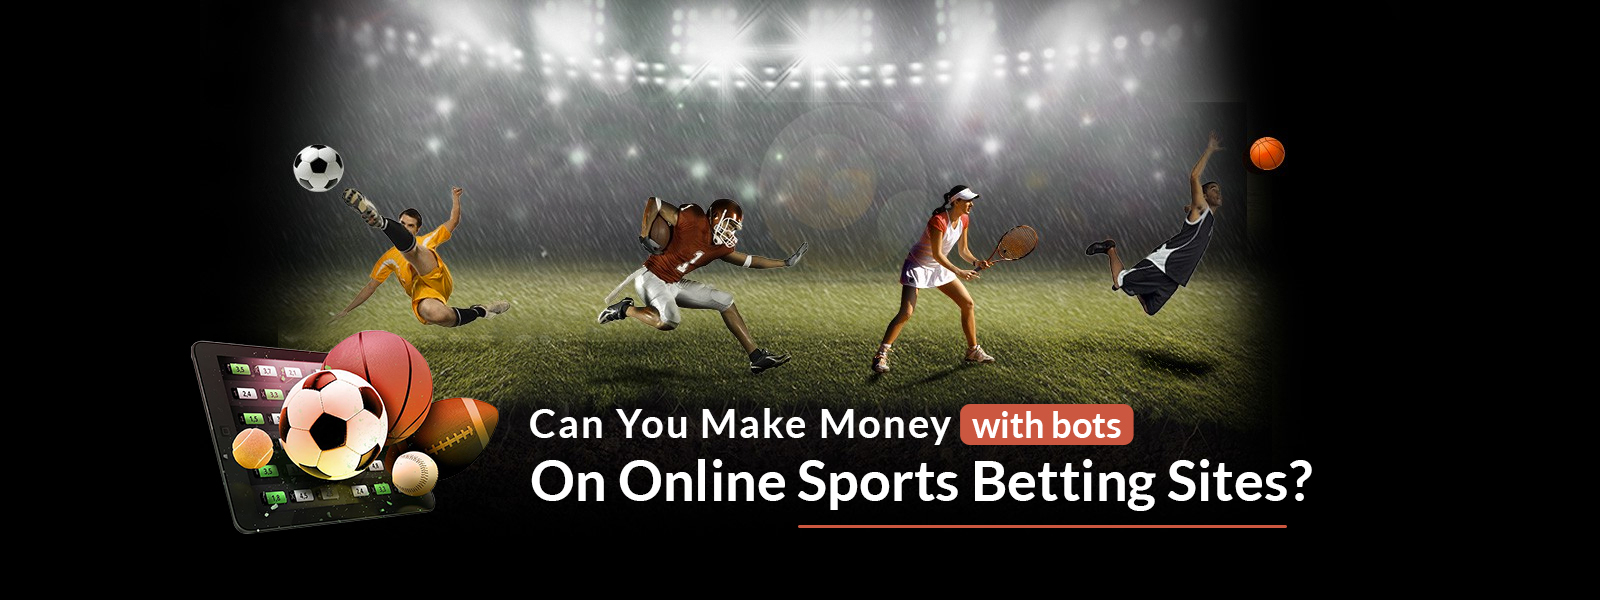 Can You Make Money With Bots on Online Sports Betting Sites?